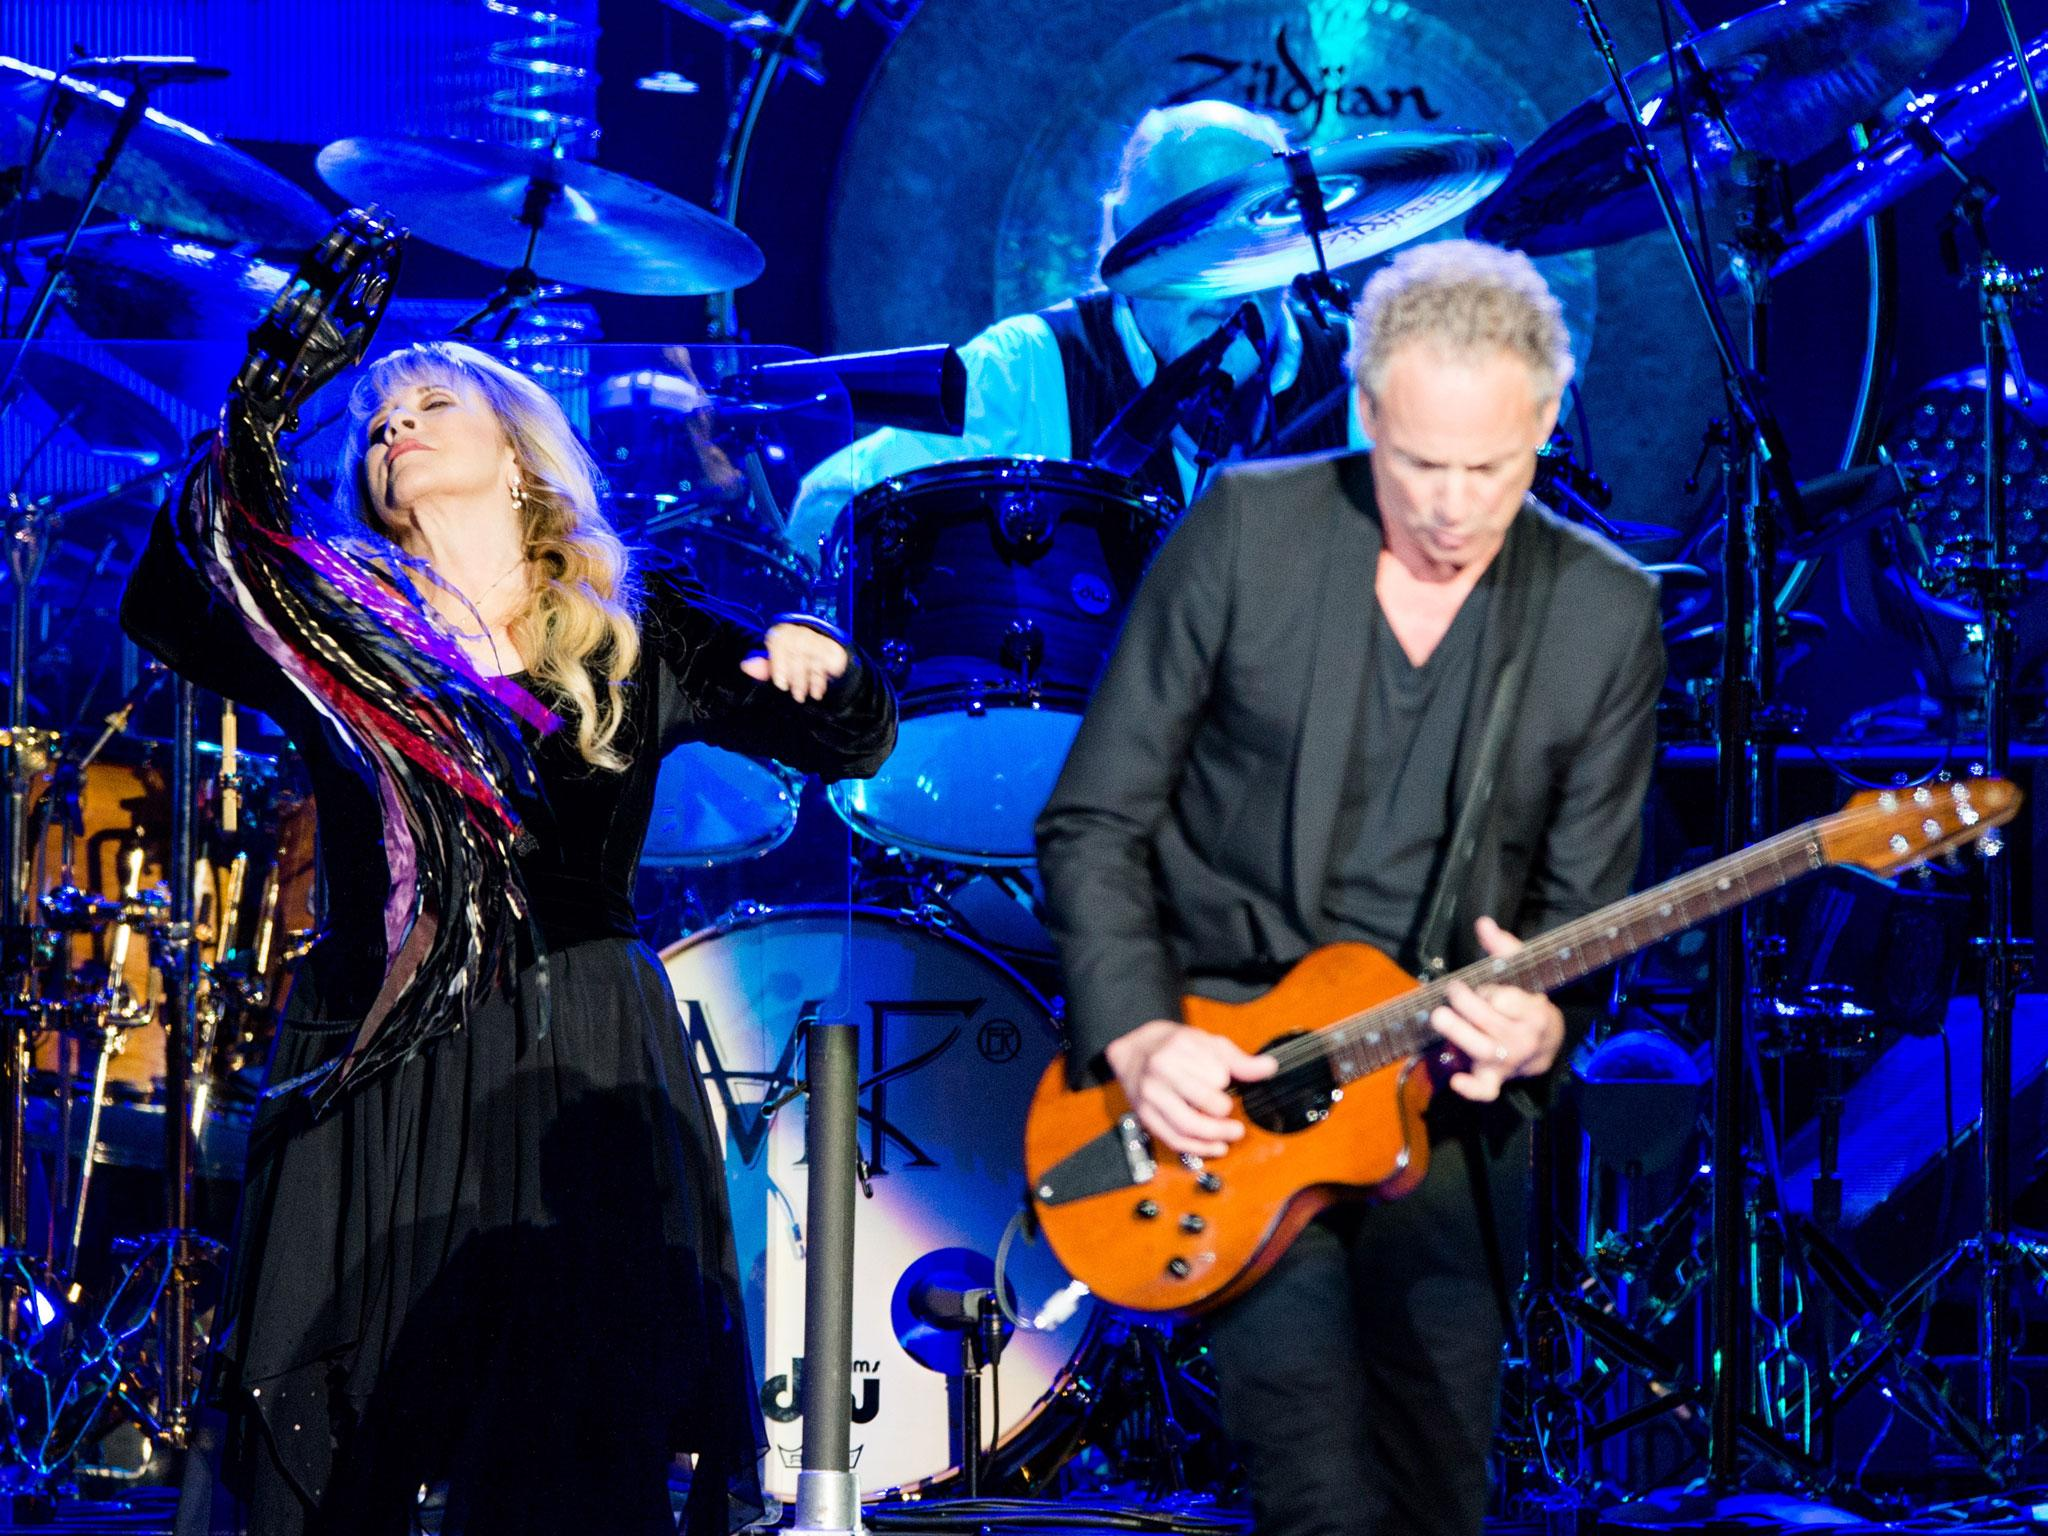 Fleetwood Mac's 20 greatest songs, from 'Landslide' to 'The